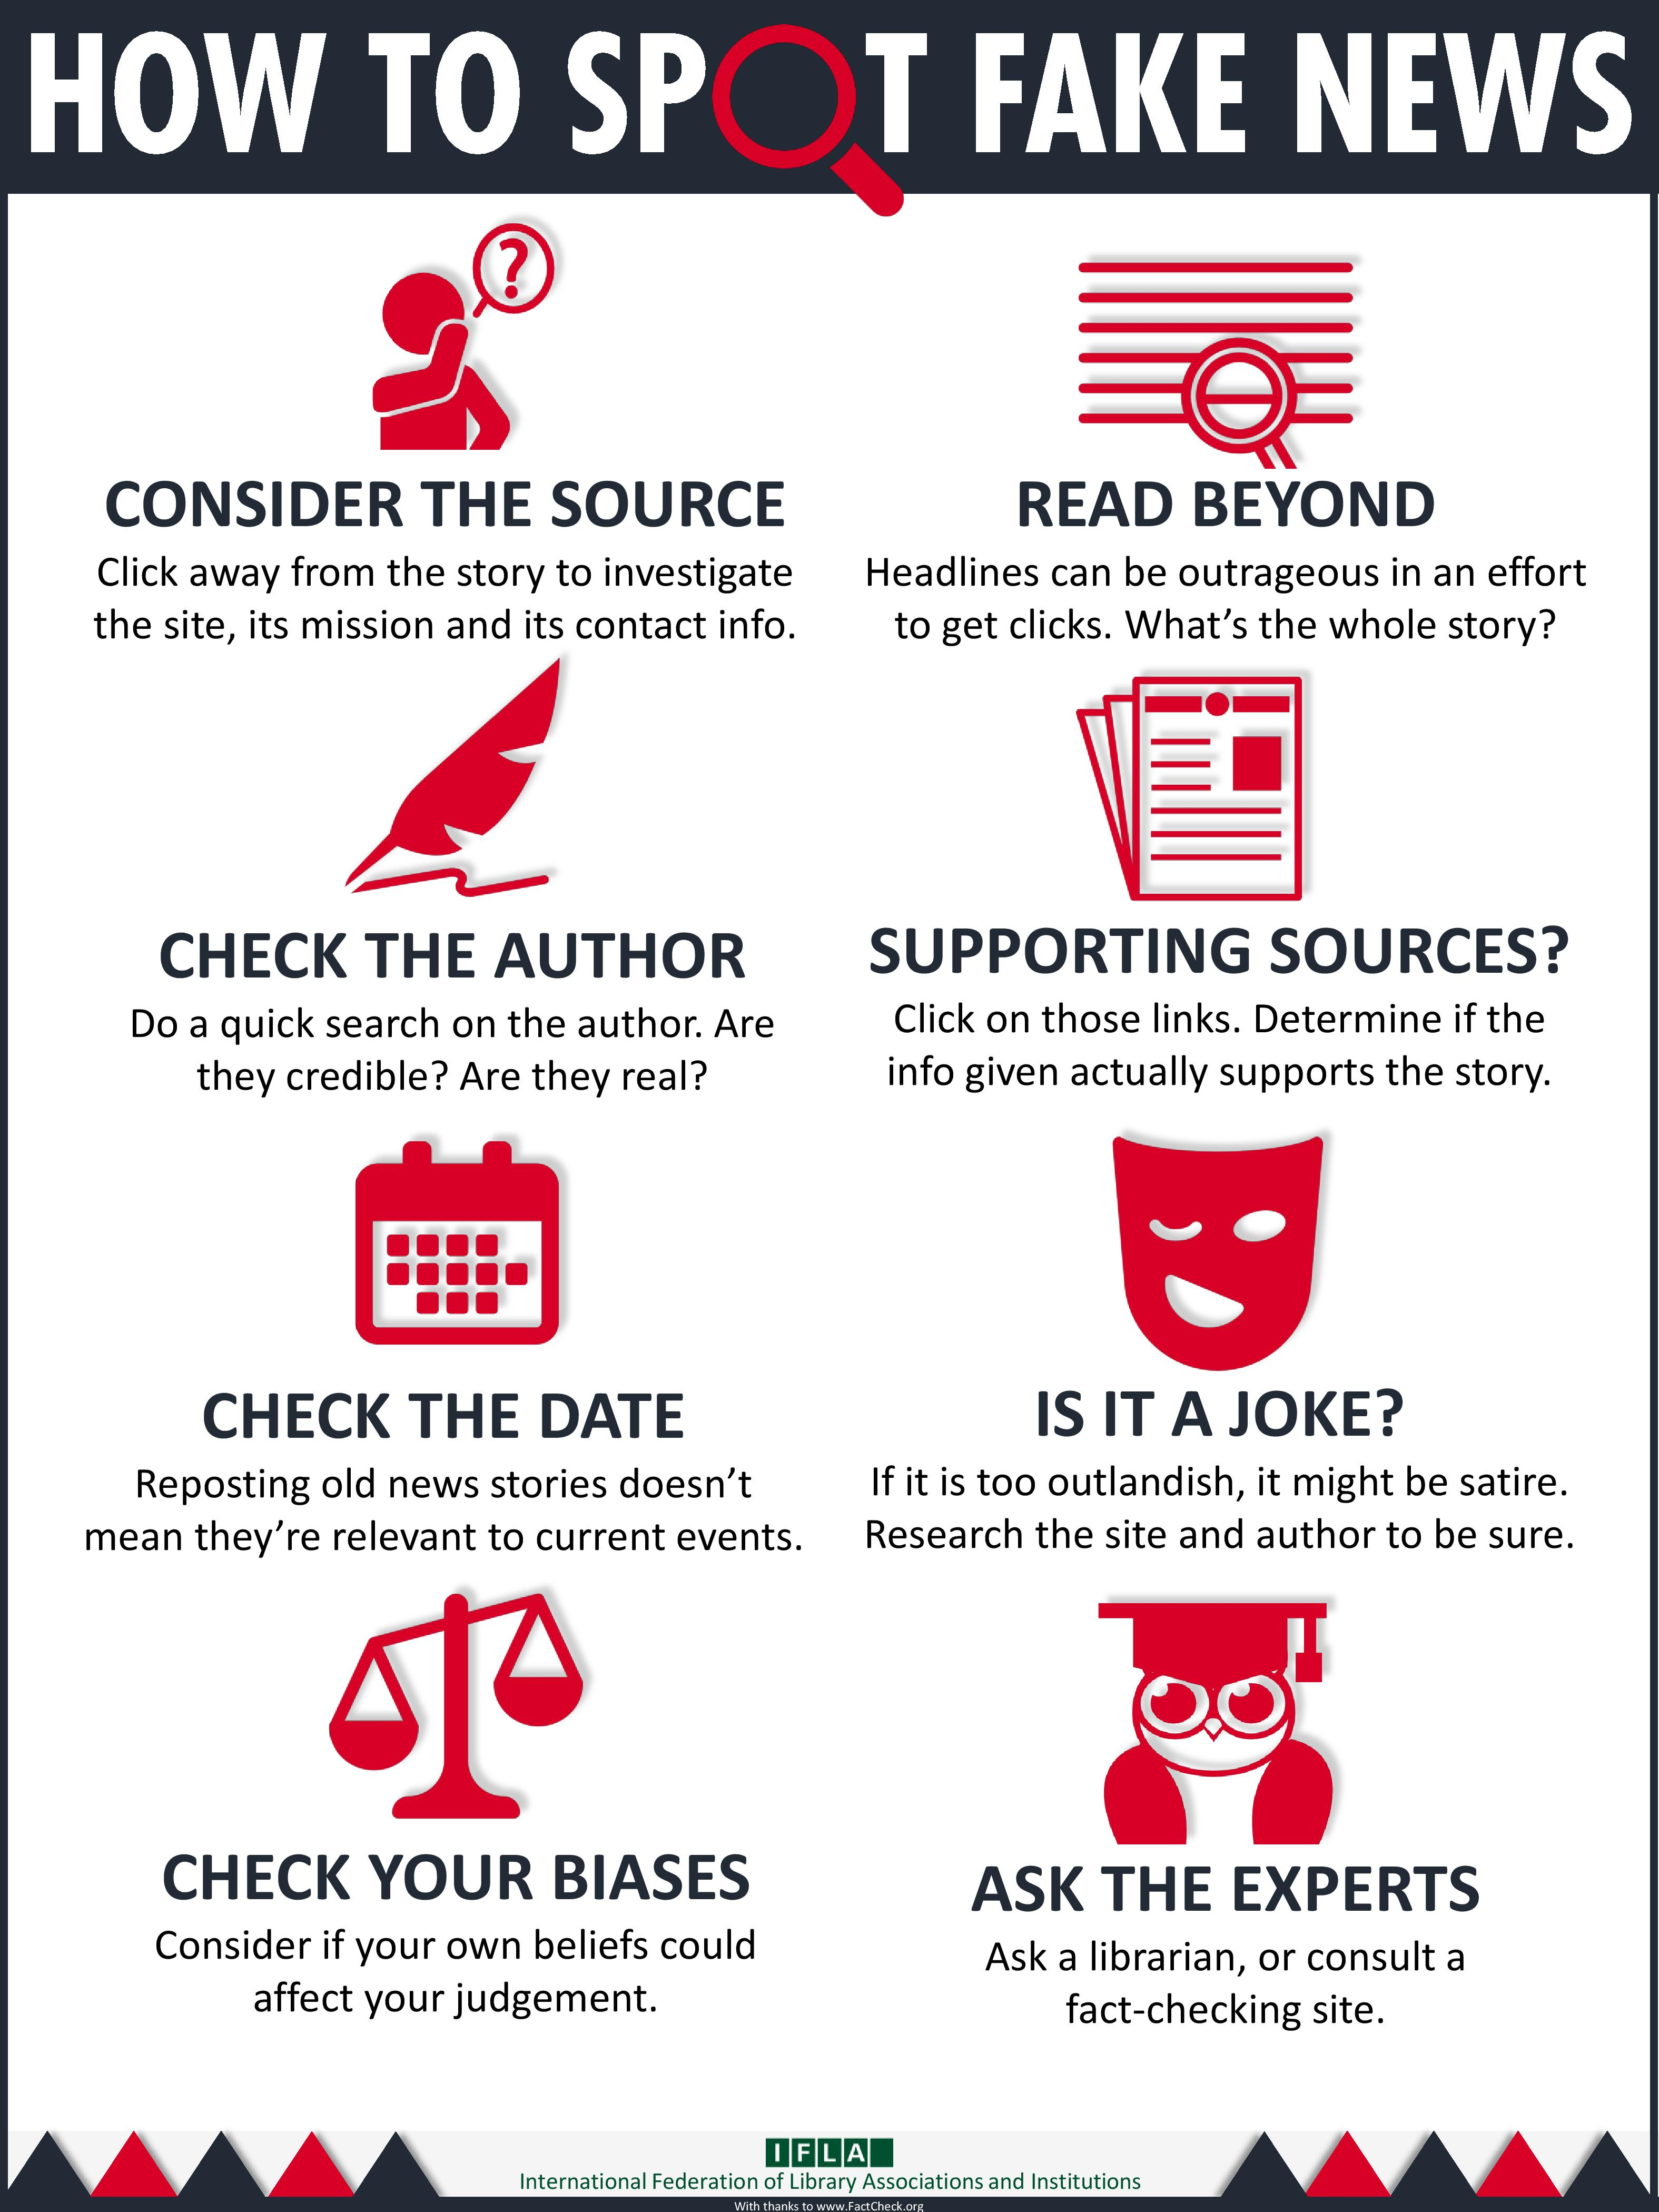 How to Spot Fake News: consider the source, read beyond the headline, check the author, check supporting sources, check the date, see if it's a joke, check your own biases, and ask the experts.